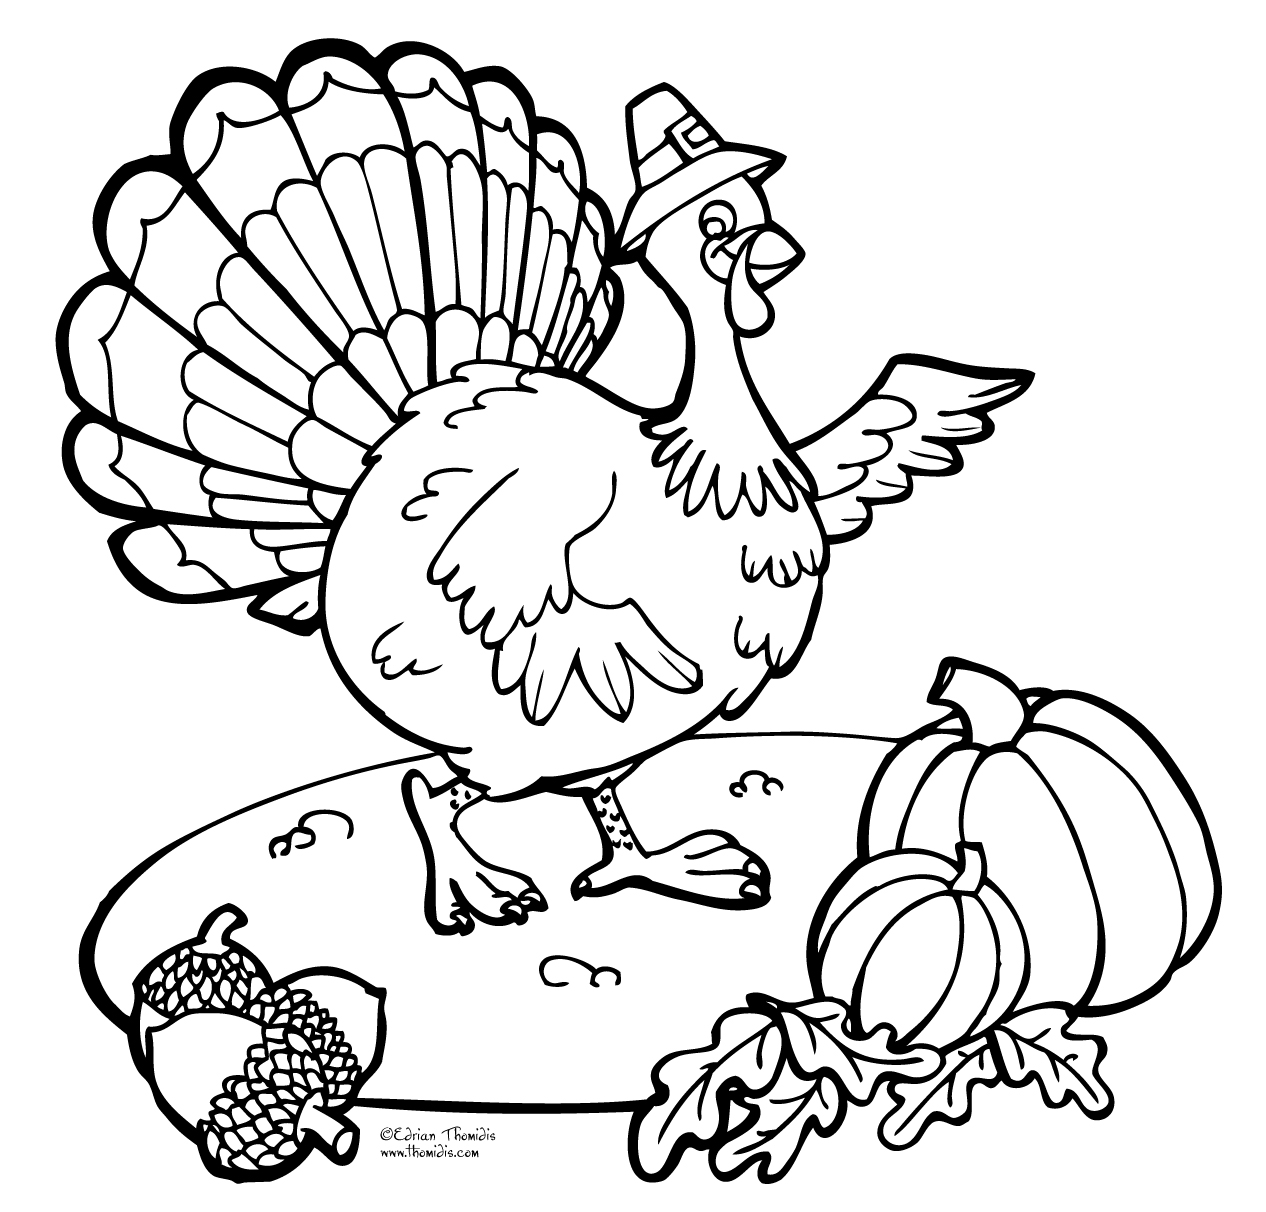 1266x1212 Fundamentals Coloring Pages Of Thanksgiving Dinner For Children